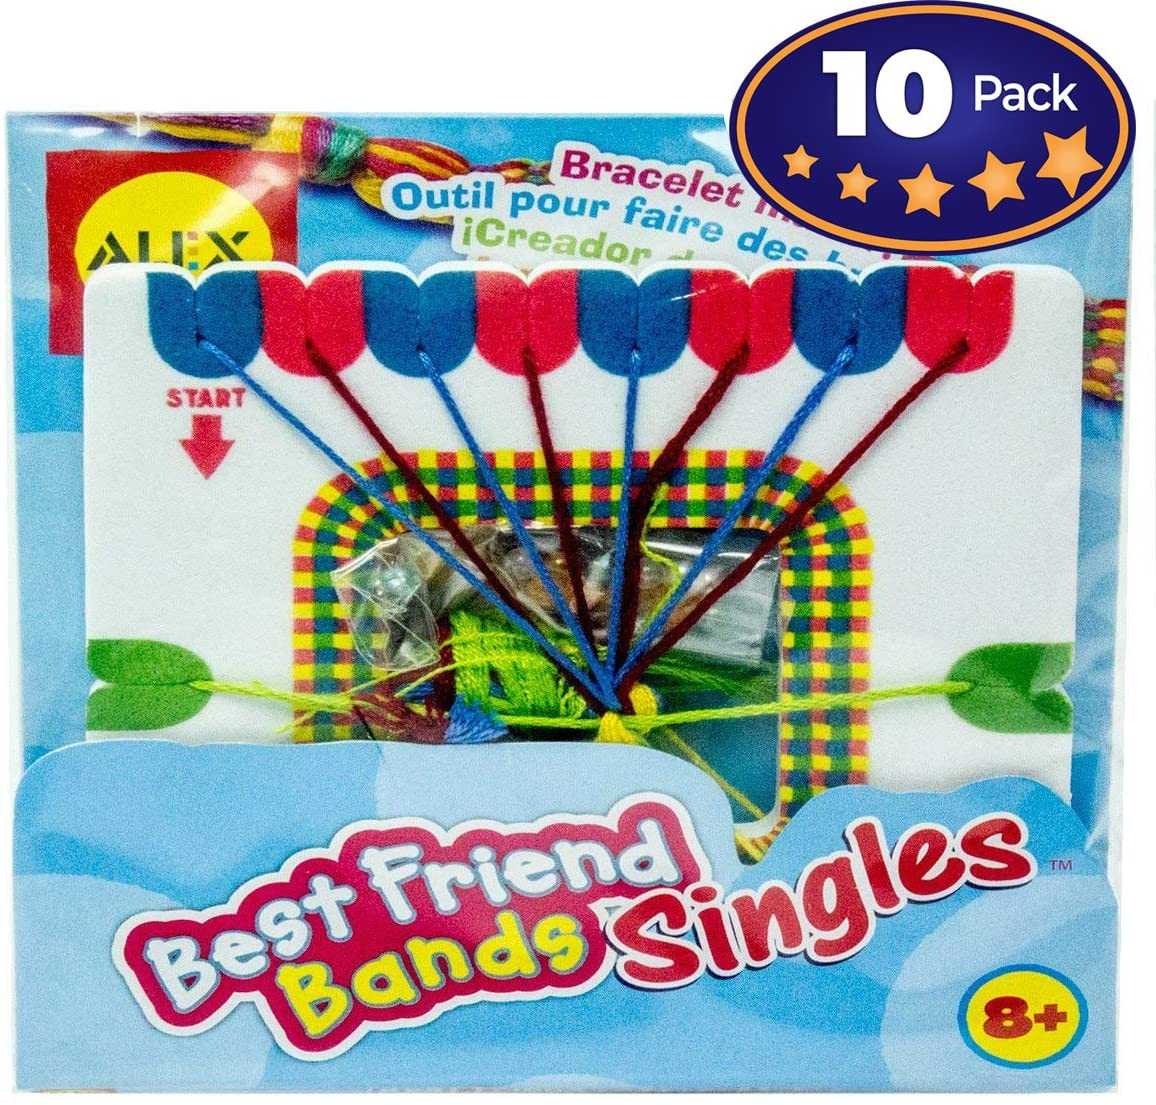 Friendship Bracelet Making Activity Kit for Boys & Girls of All Ages, 10 Pack. Colorful Project for Birthday Parties. Keep Kids Entertained & They Leave With A Favor! Includes All Materials Needed.